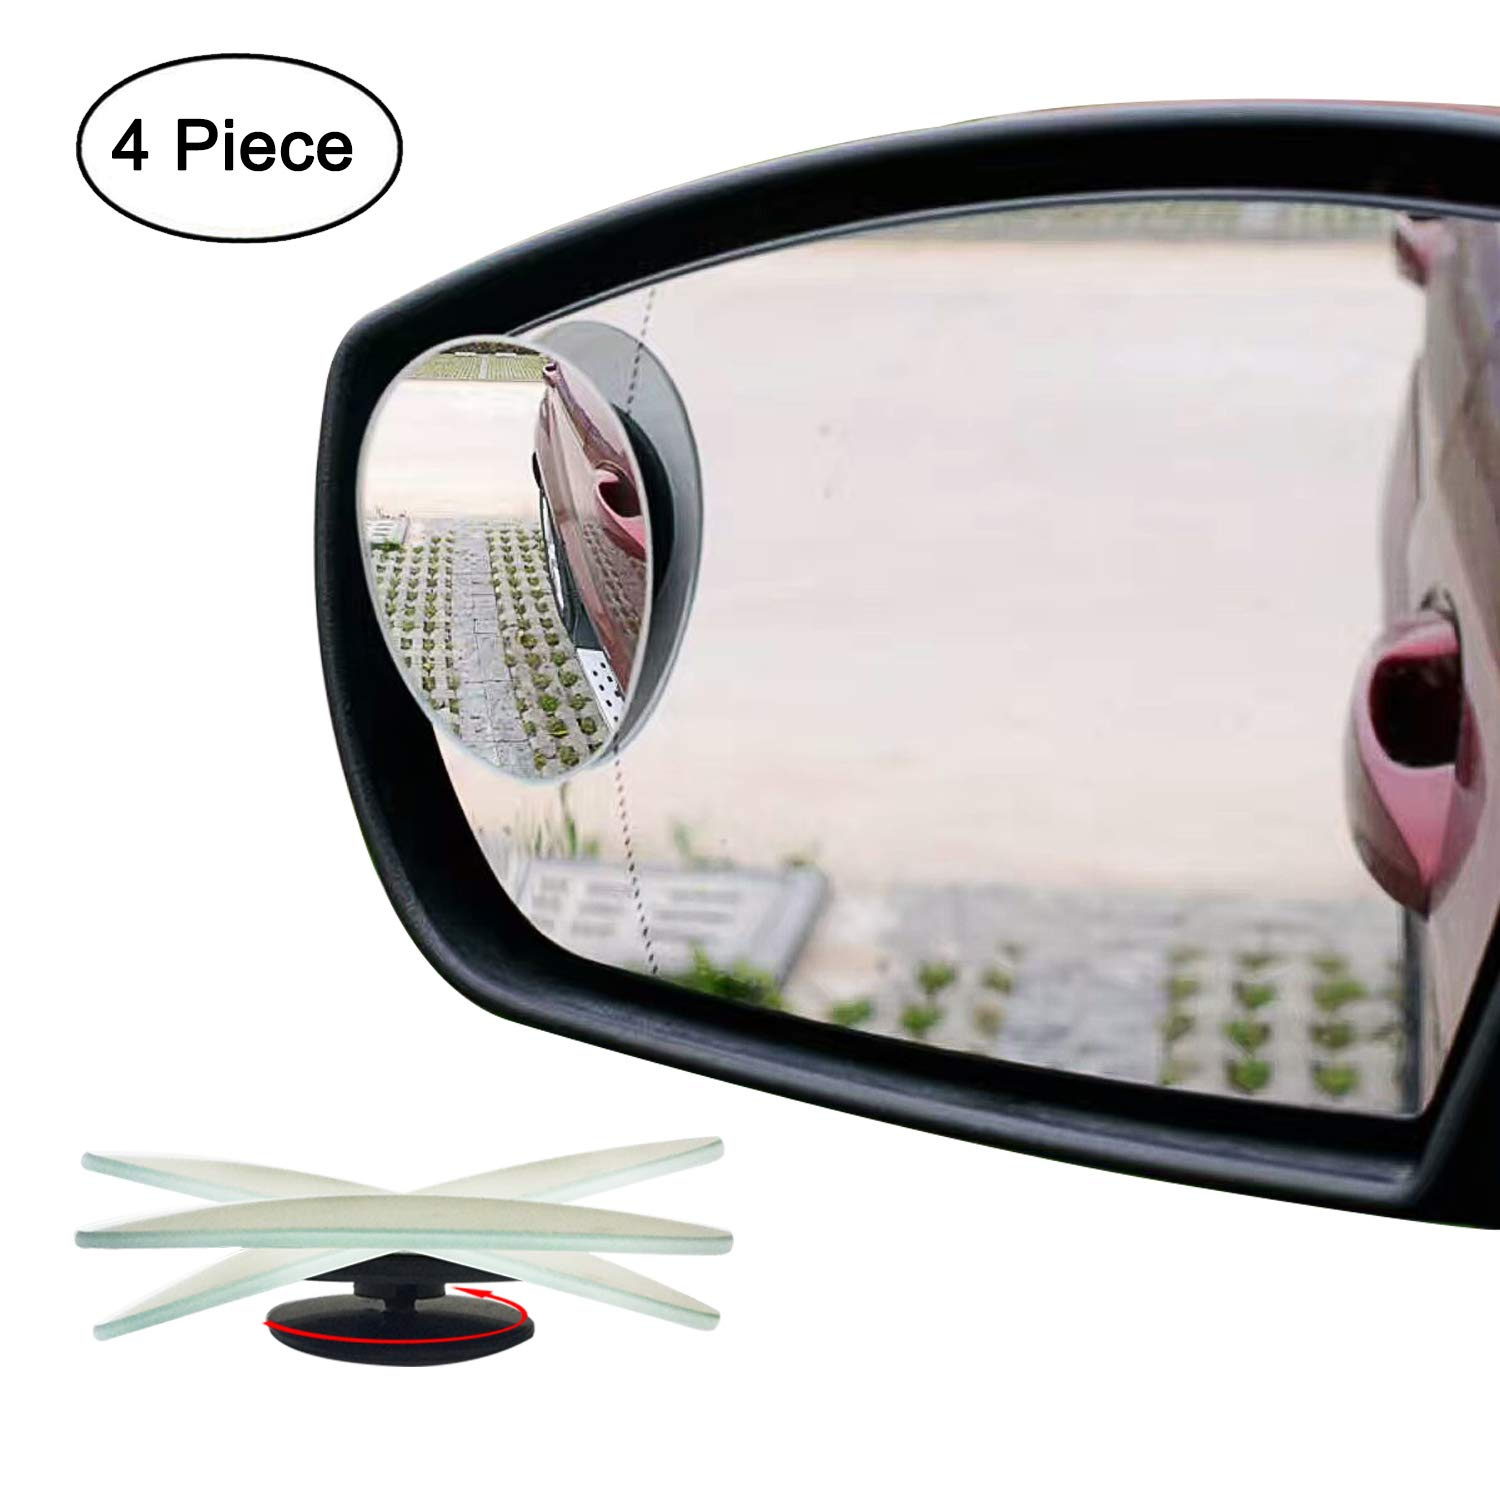 Ampper Upgrade 2' Blind Spot Mirrors, 360 Degree Rotate Sway Adjustabe HD Glass Convex Wide Angle Rear View Car SUV Universal Fit Stick-On Lens (Pack of 4) Am-BSM01